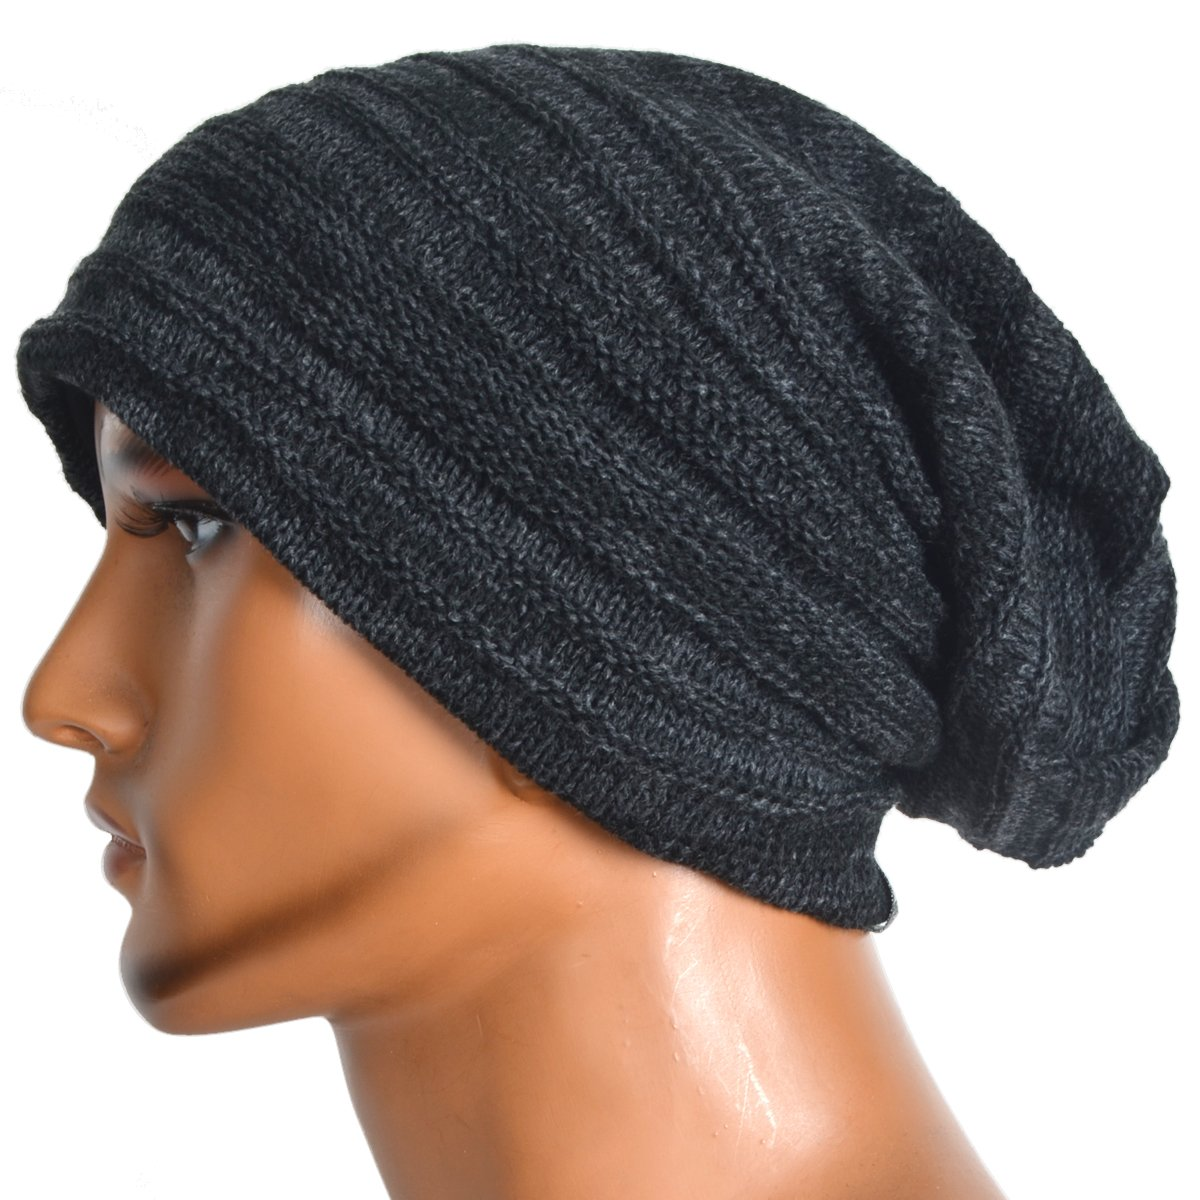 380f0af56b4 VECRY Mens Slouchy Knit Oversized Beanie Skull Caps Hat (Black) at Amazon  Men s Clothing store